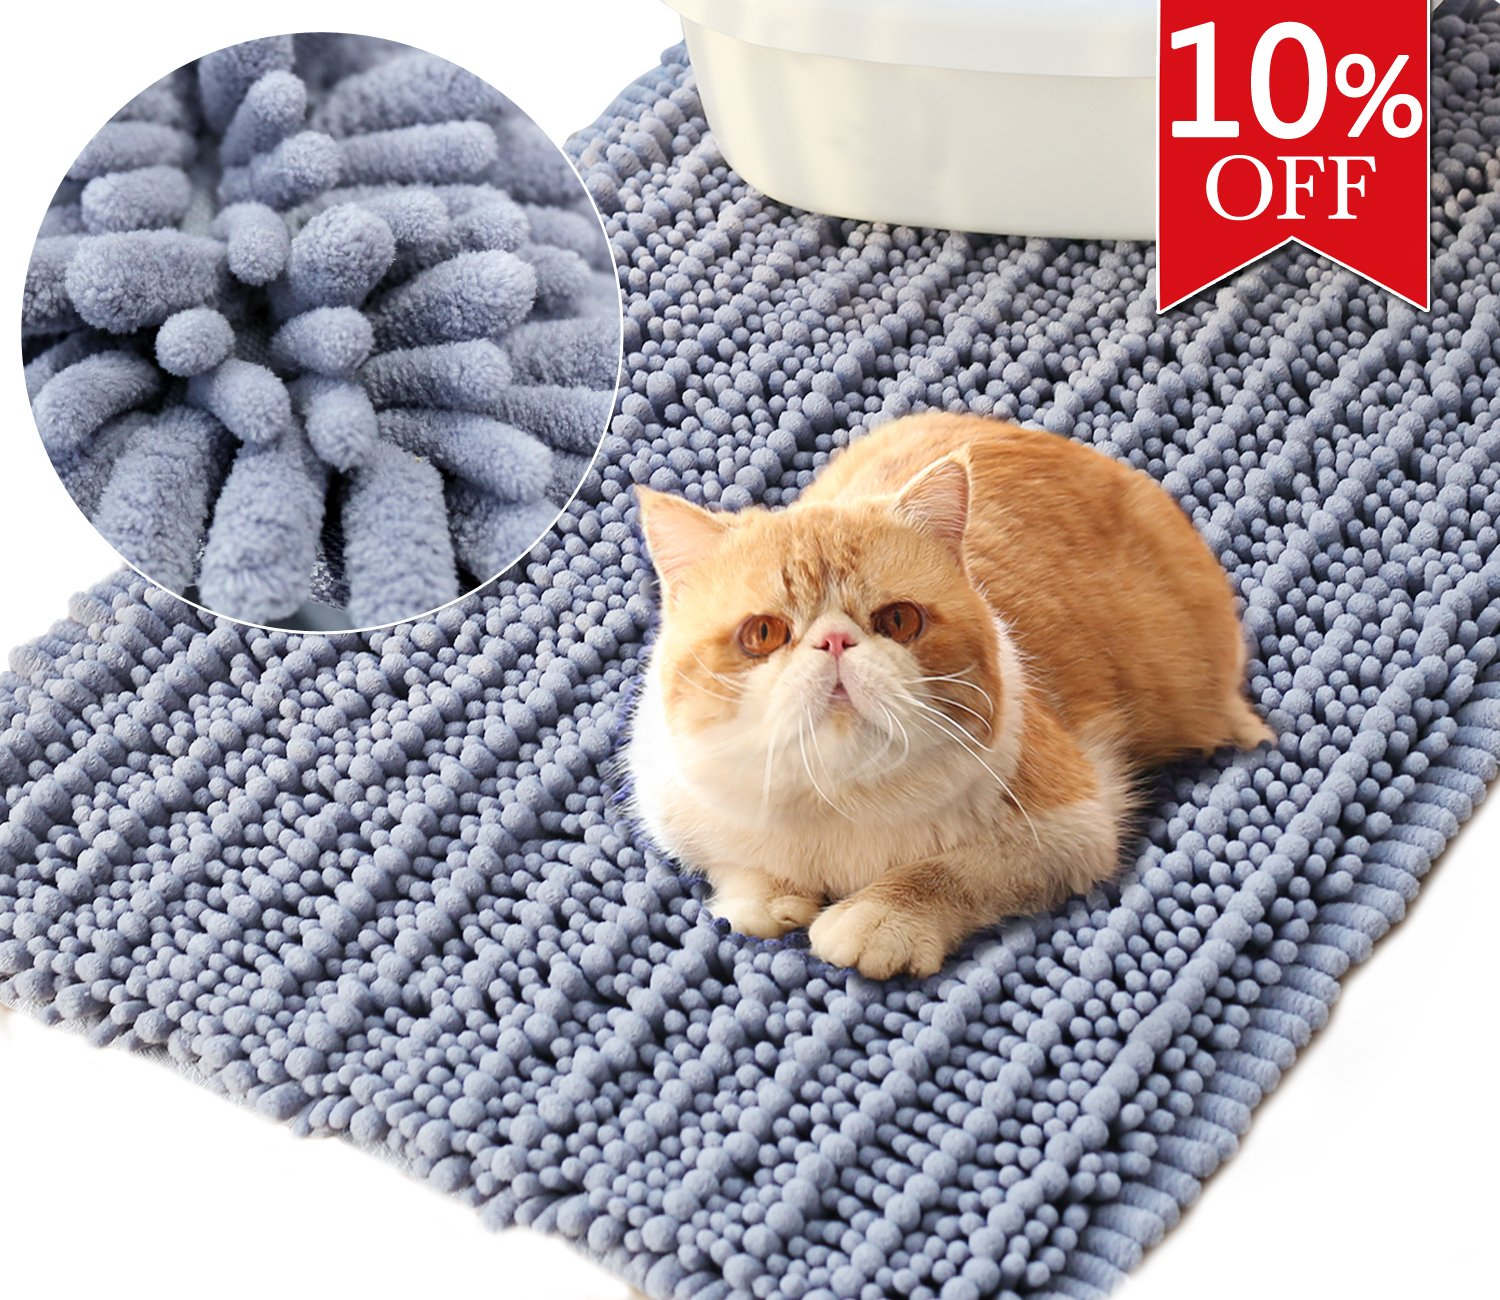 Vivaglory 35½ x 23¾inch Large Washable Cat Litter Mat,3D Design Microfiber Litter Trap Mat, Soft on Sensitive Paws,Ultra Absorbent and Waterproof, Grey